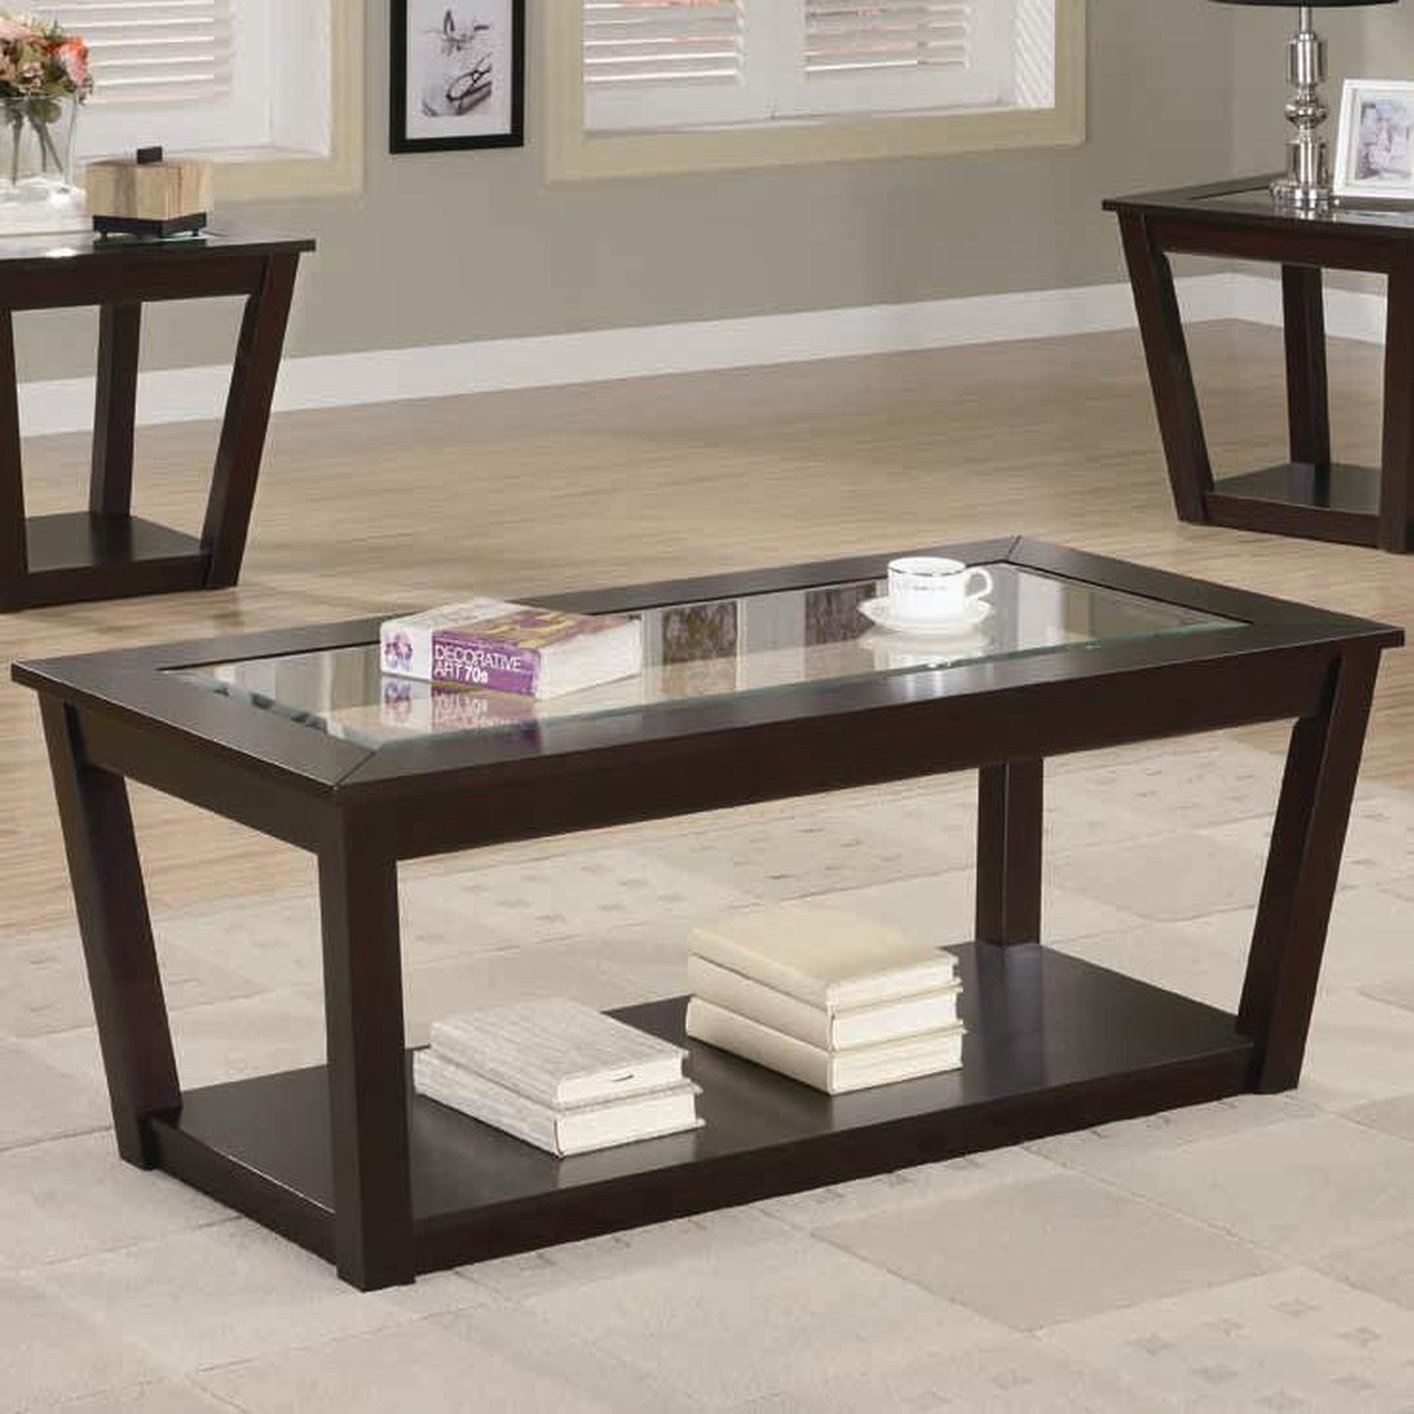 Brown Glass Coffee Table Related How To Decorate Your Living Room Furniture Inspiration Ideas Simple And Neat Look (View 7 of 10)